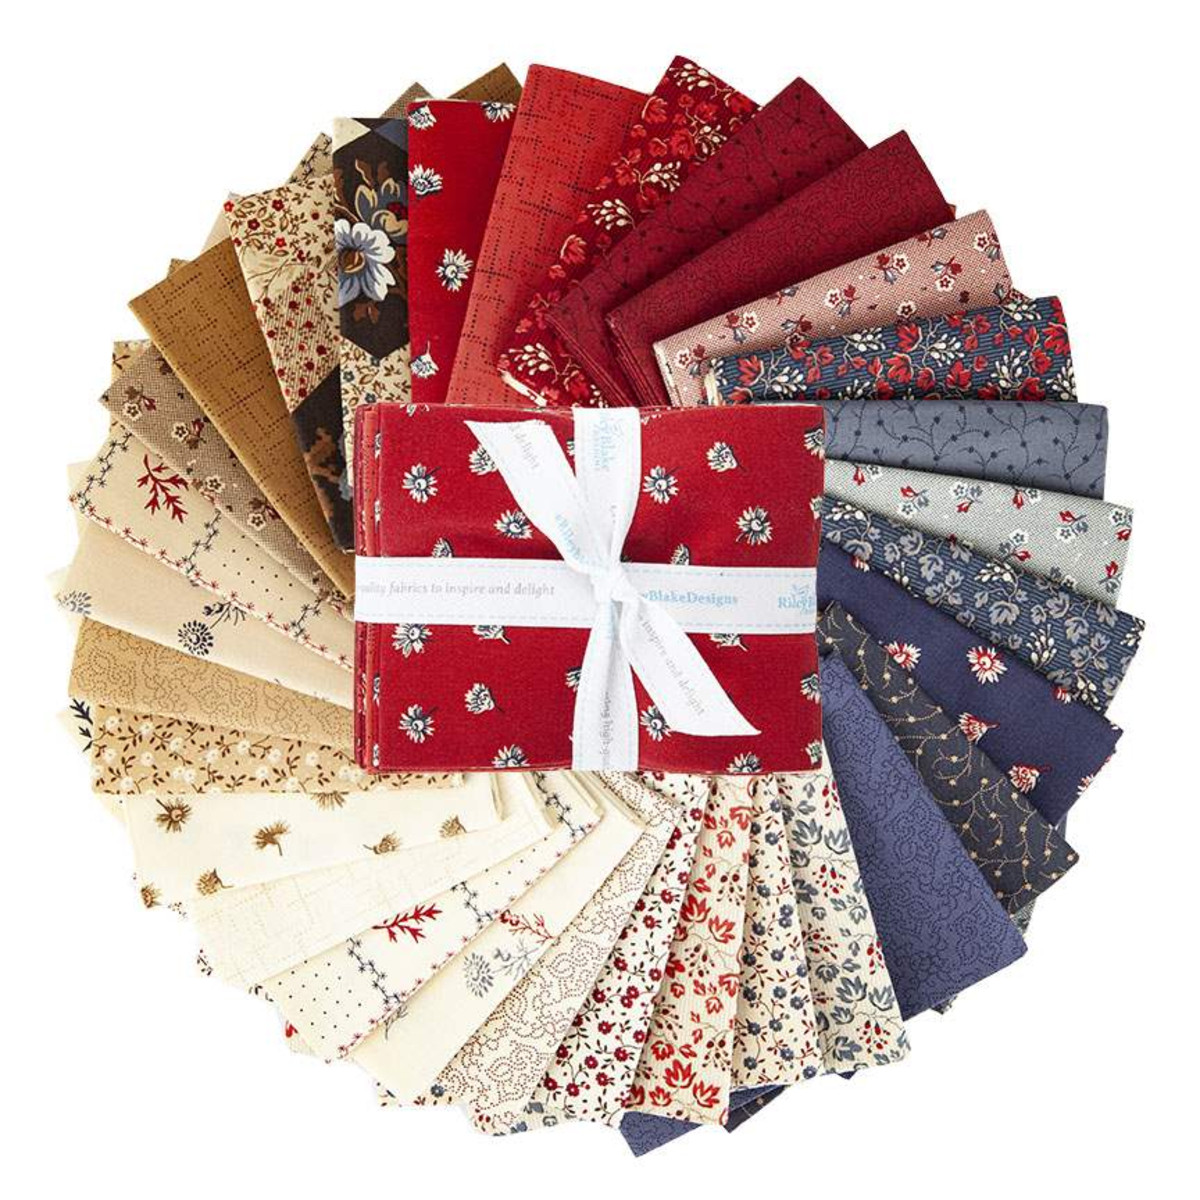 Riley Blake Fat Quarter Bundle - Seeds of Glory by Stacy West